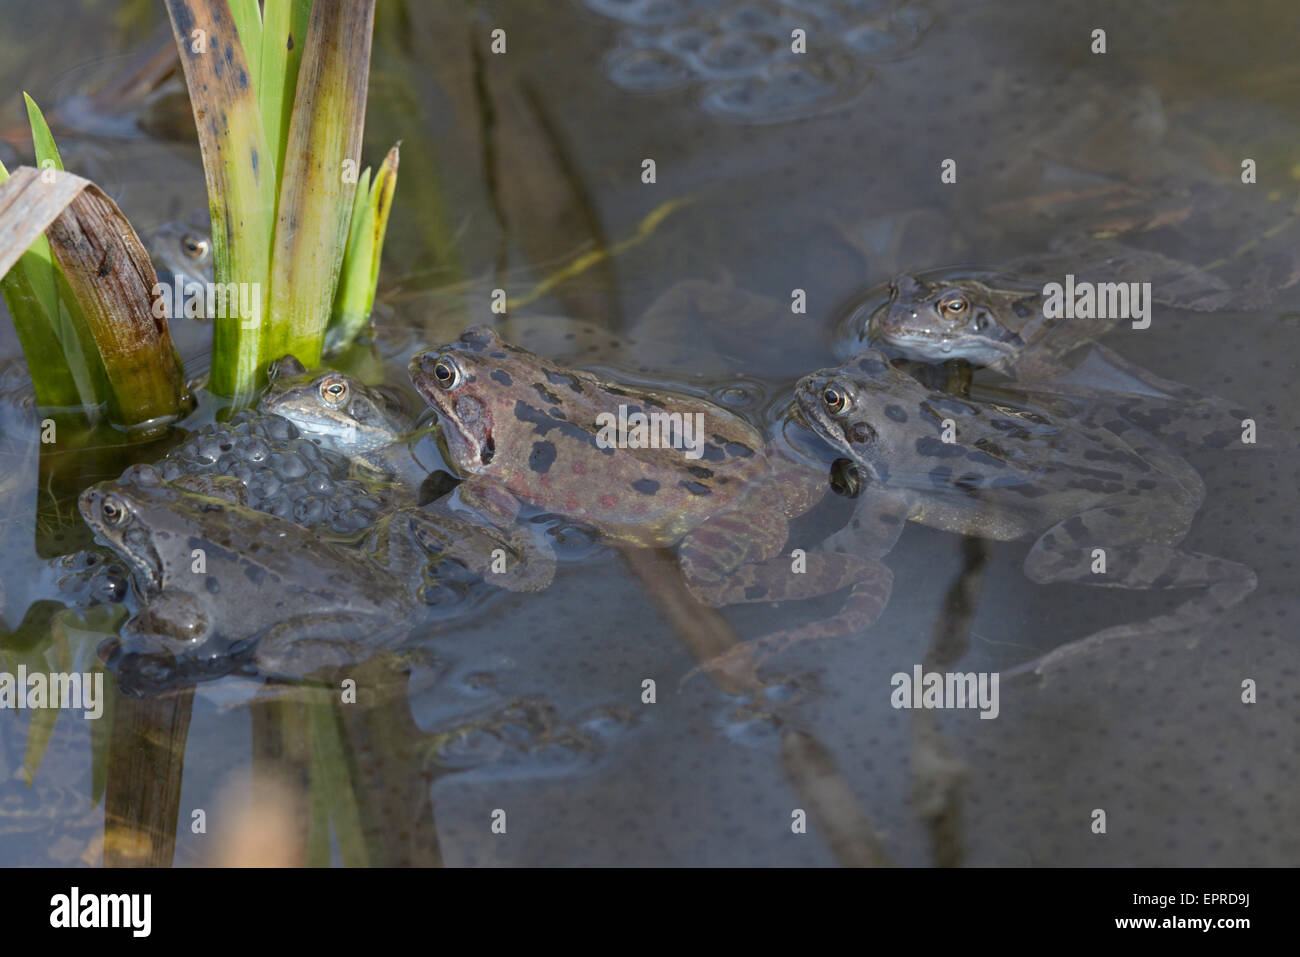 Male common frogs (Rana temporaria) looking for female to mate - Stock Image